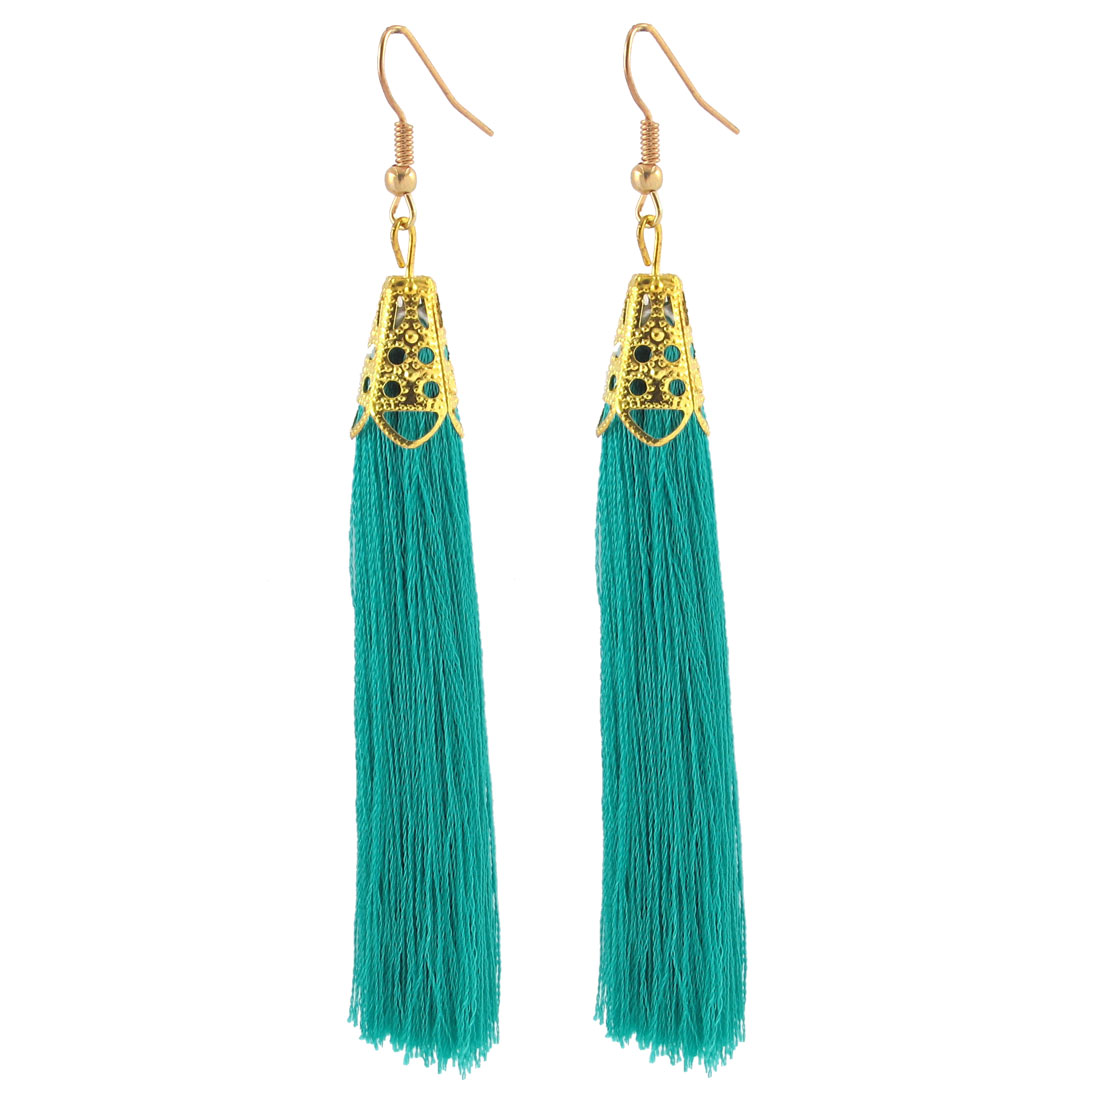 Bead Decor Fish Hook Long Nylon Tassel Earrings Ear Drop 2 Pcs Green